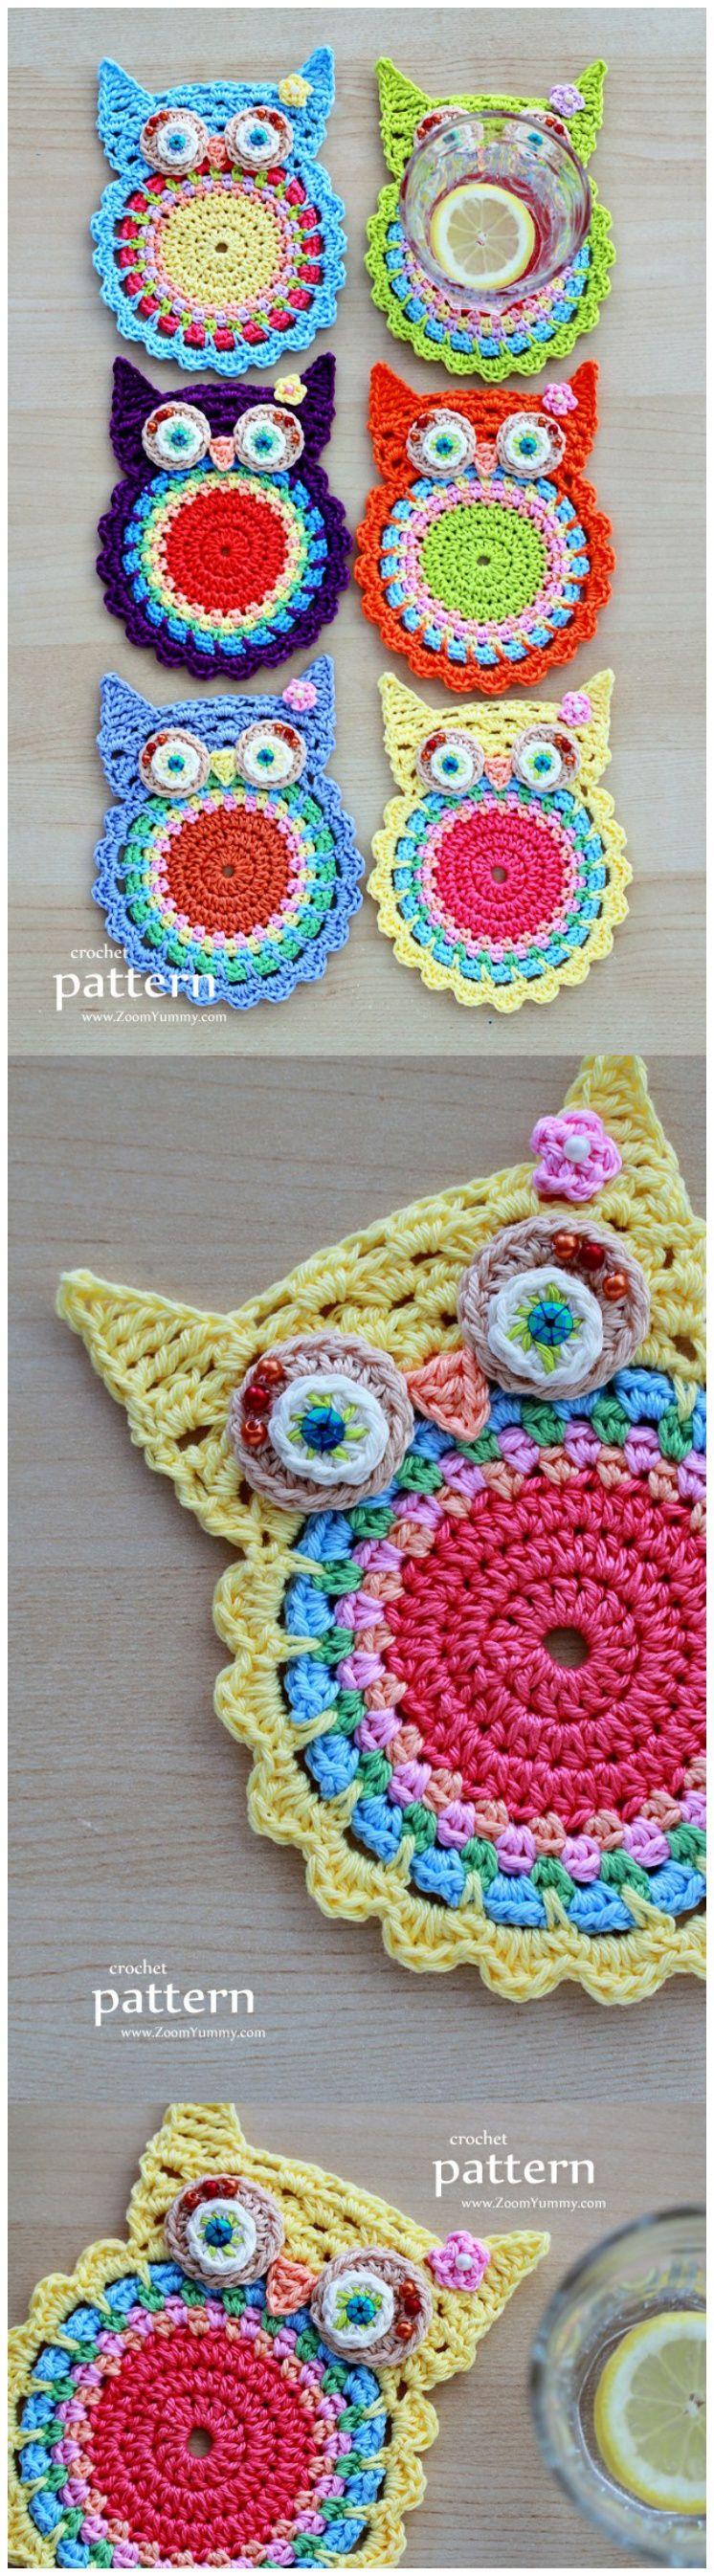 30+ Adorable Owl Craft Ideas For Your Next Project | Häkeln, Eule ...